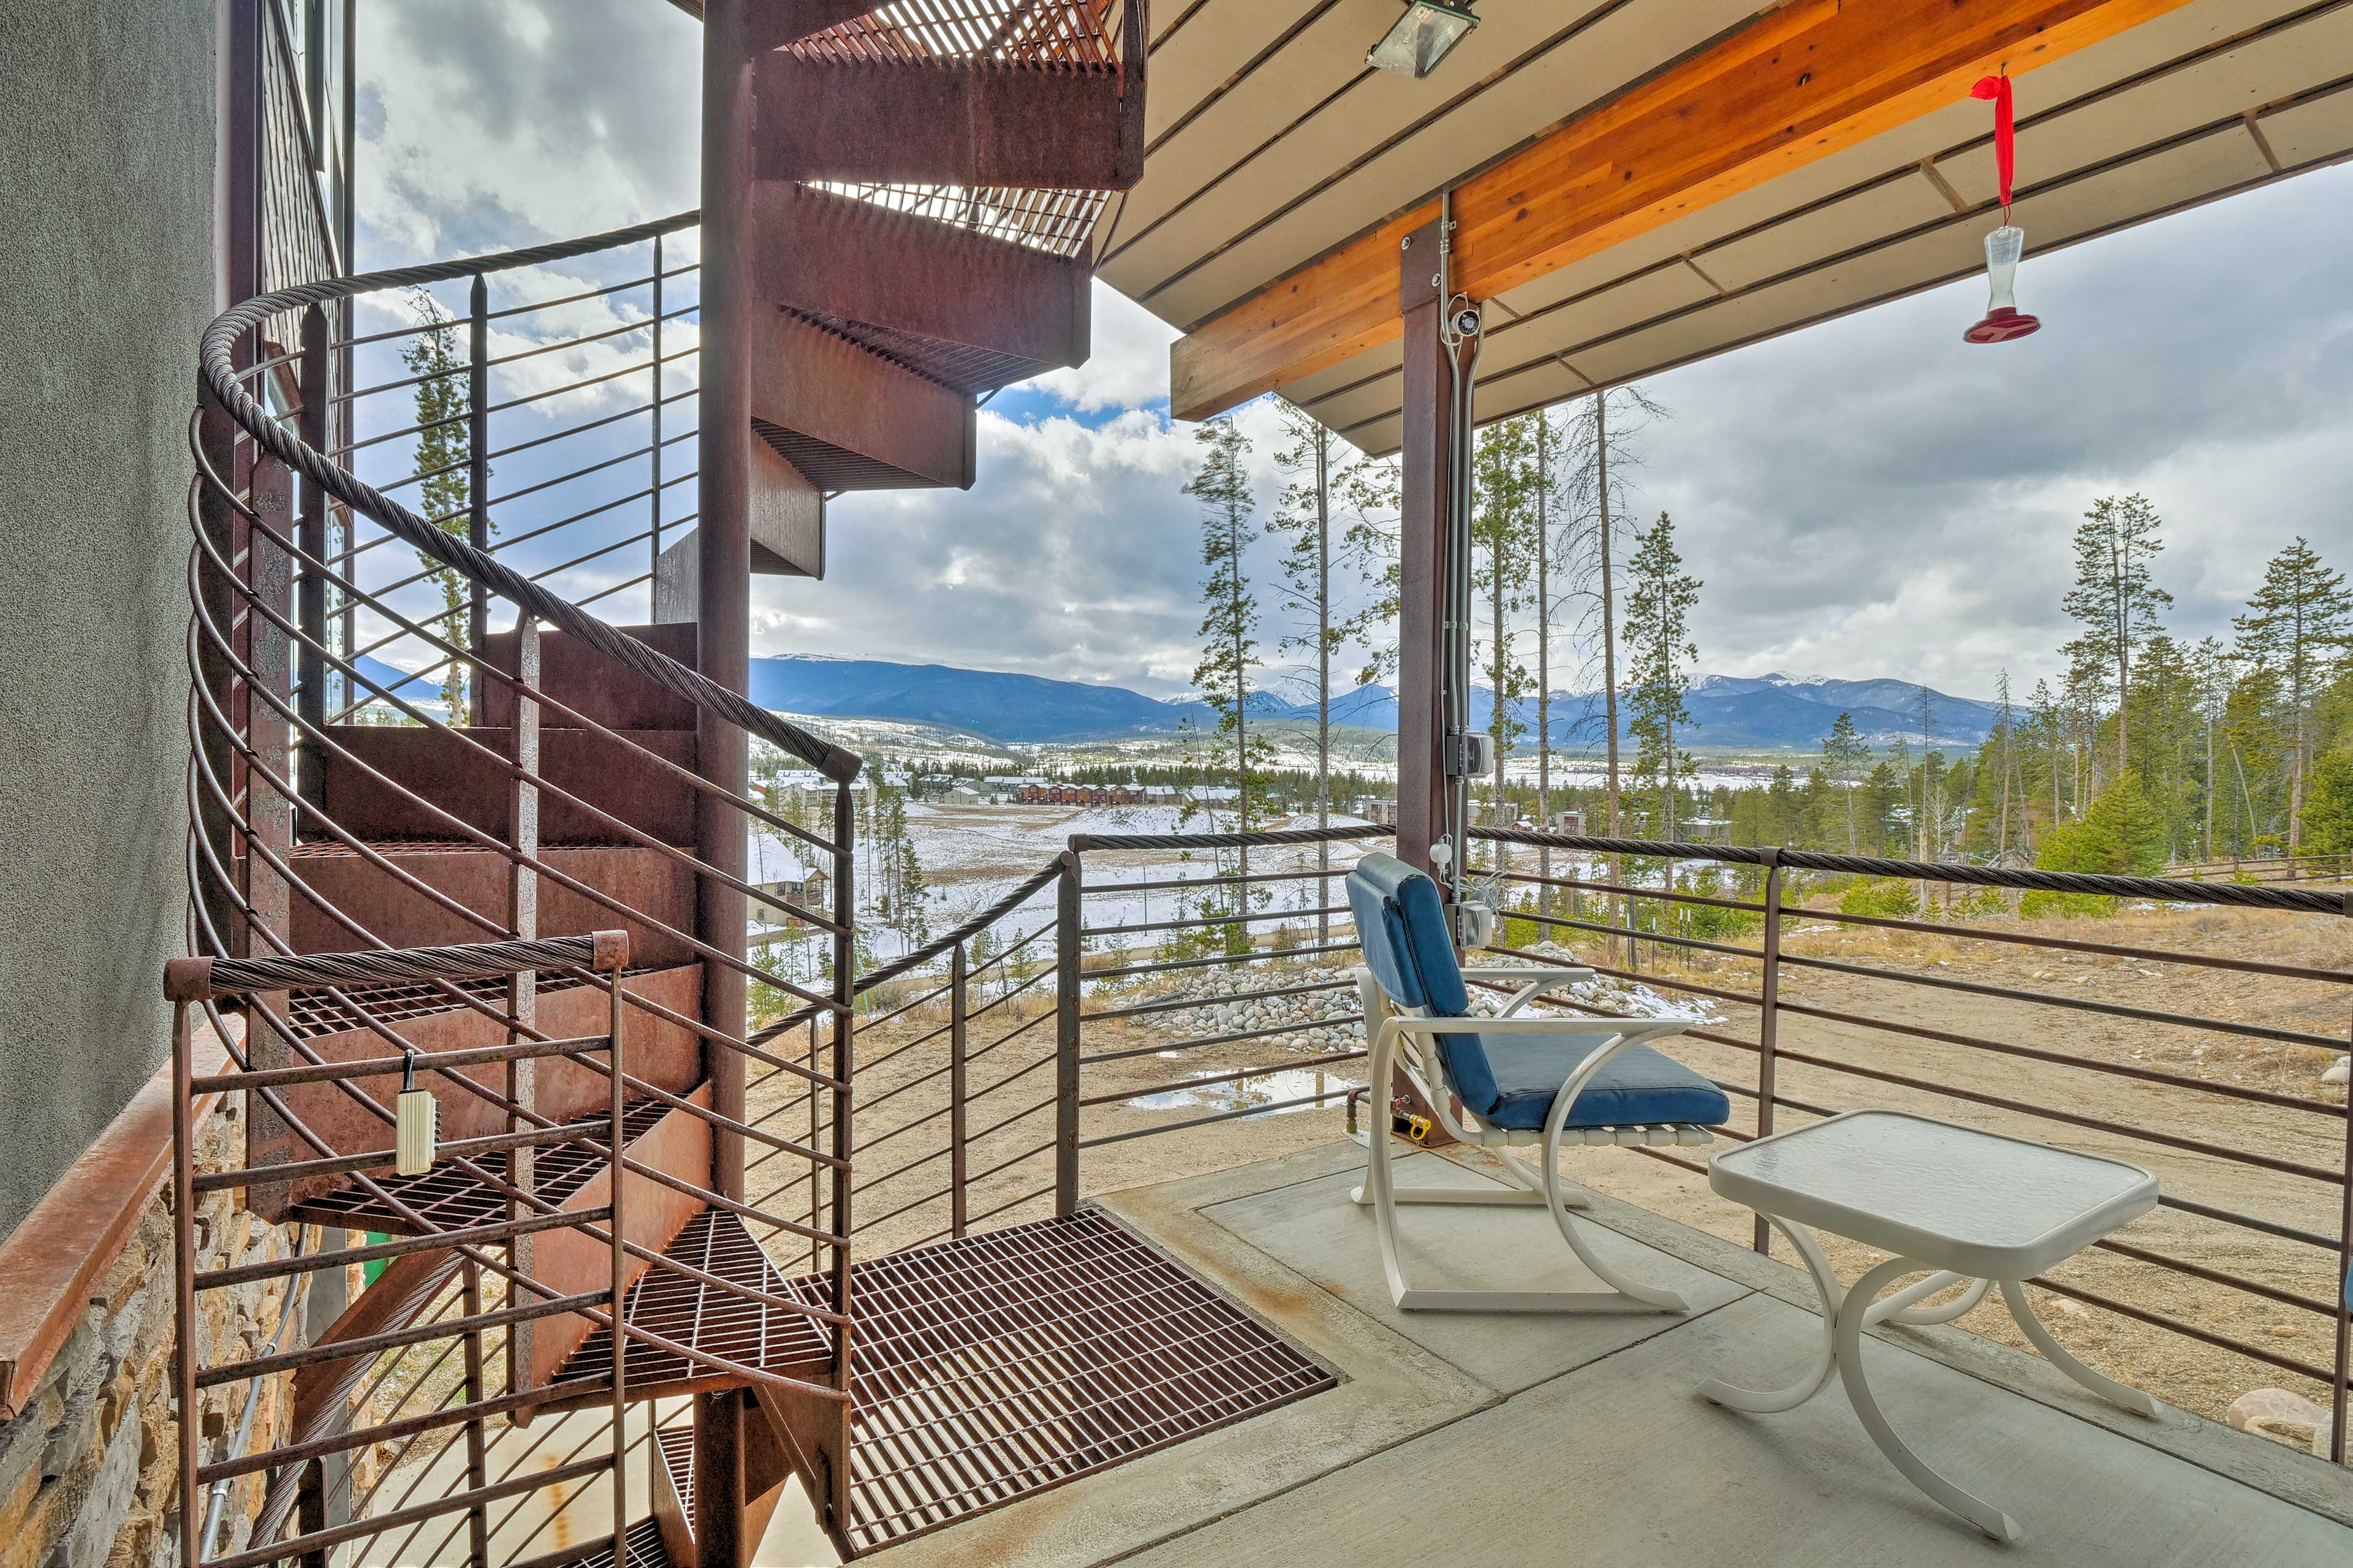 Head up the spiral staircase to access the home's second floor.